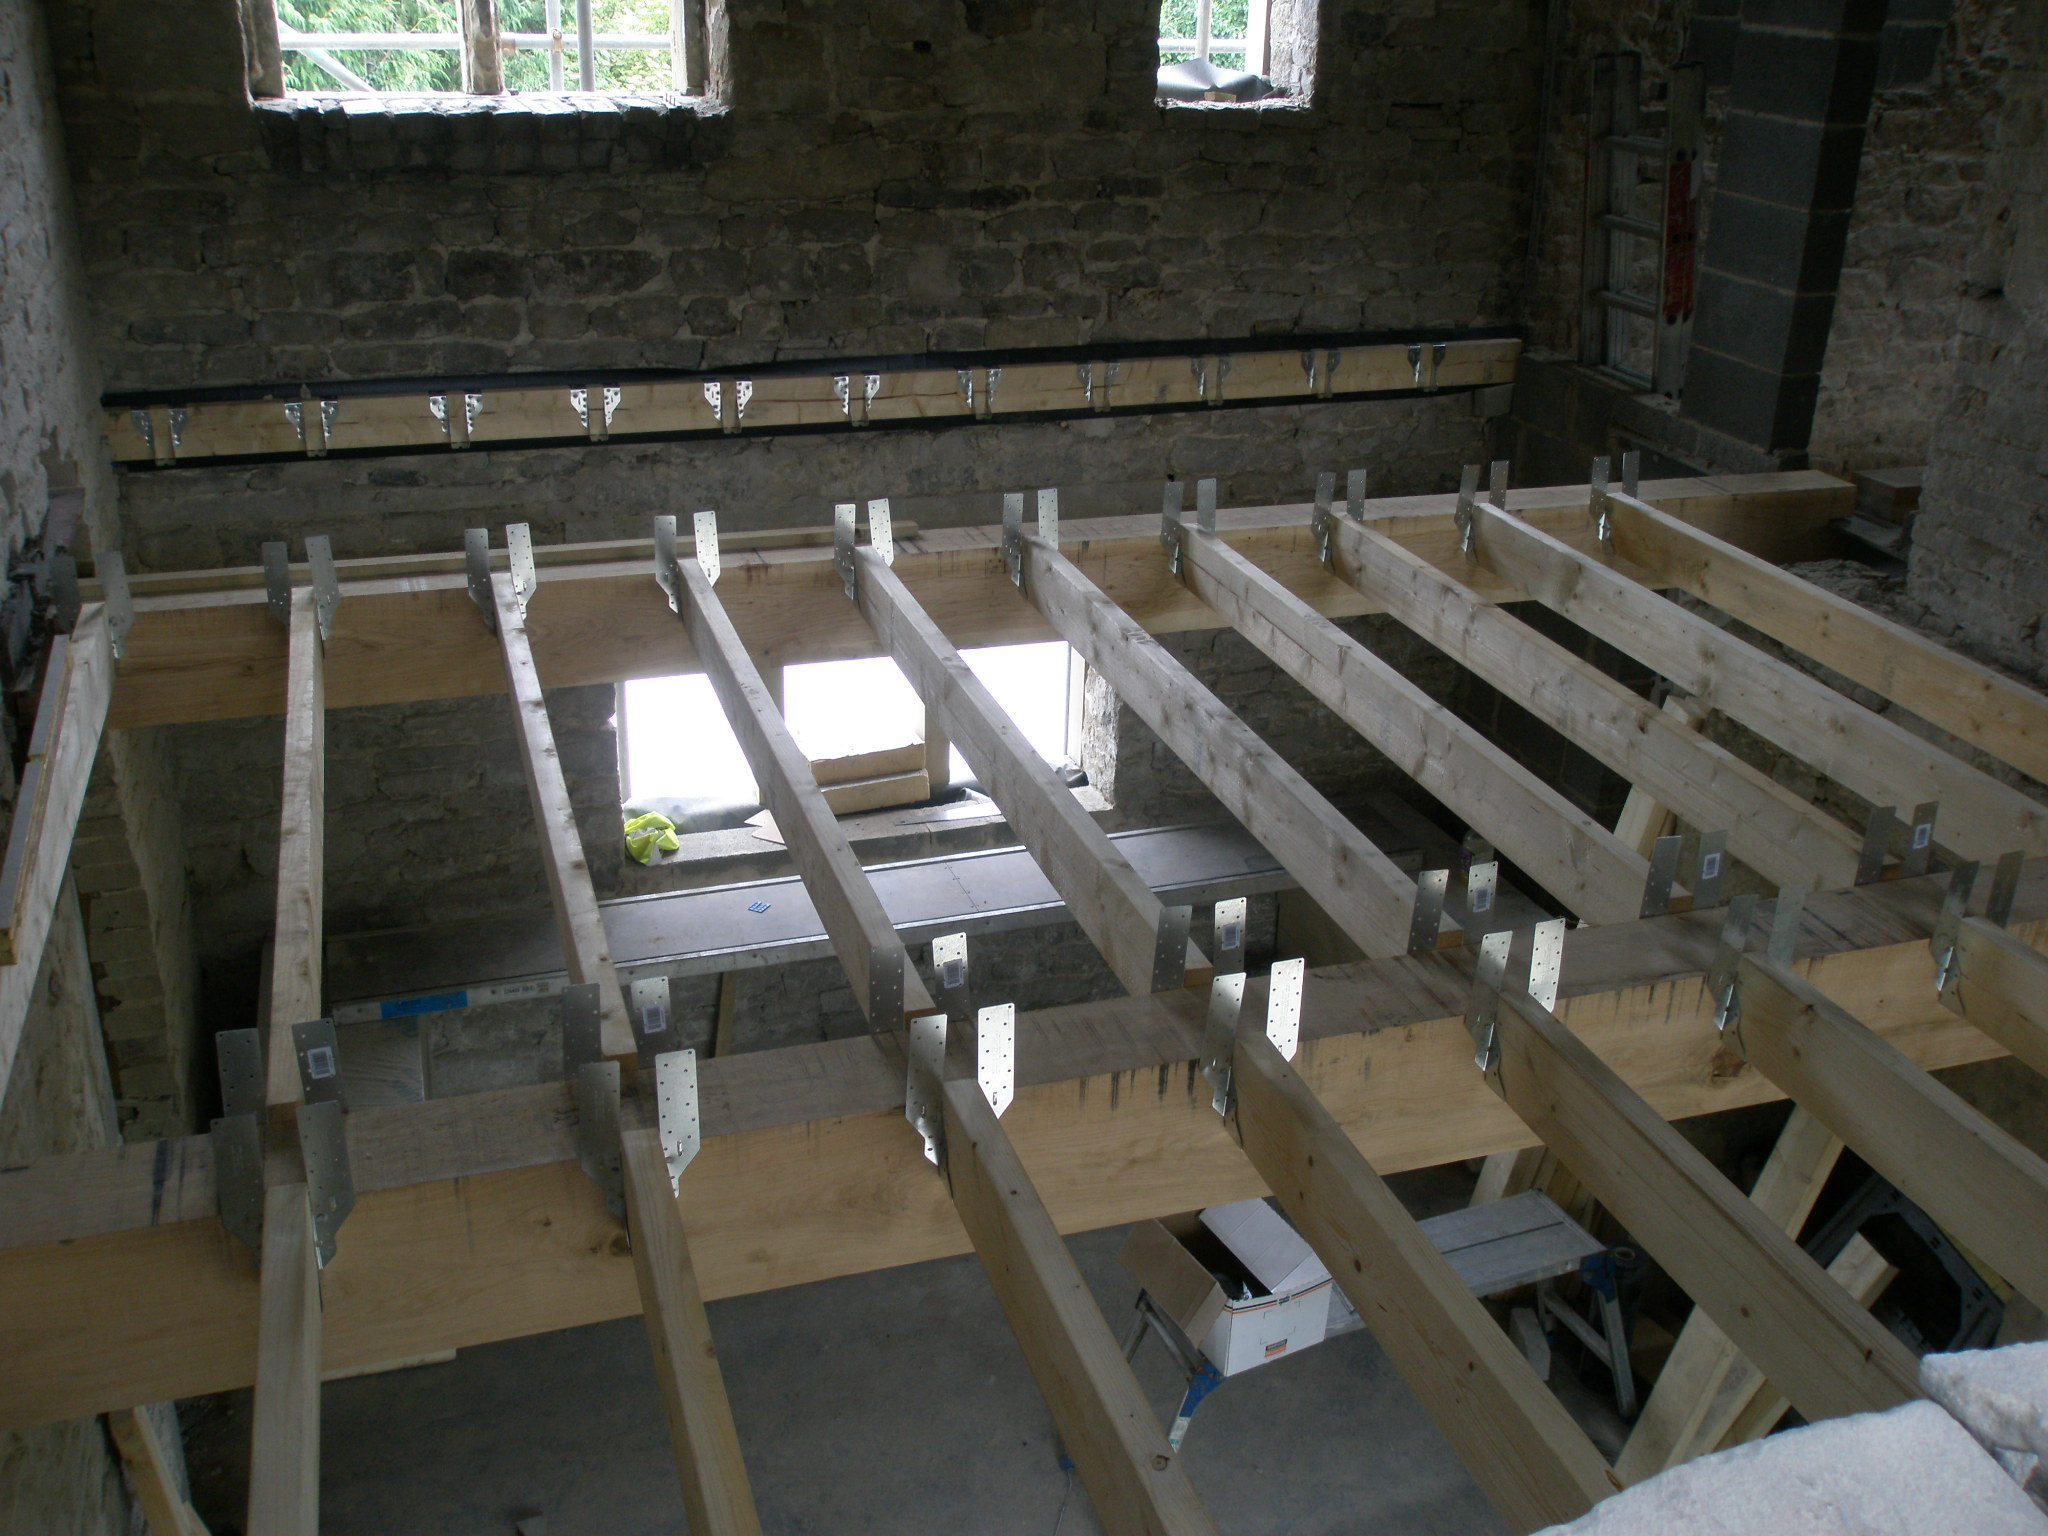 Beams And Joists In Number 9 Renovating Hagg Leys Farm